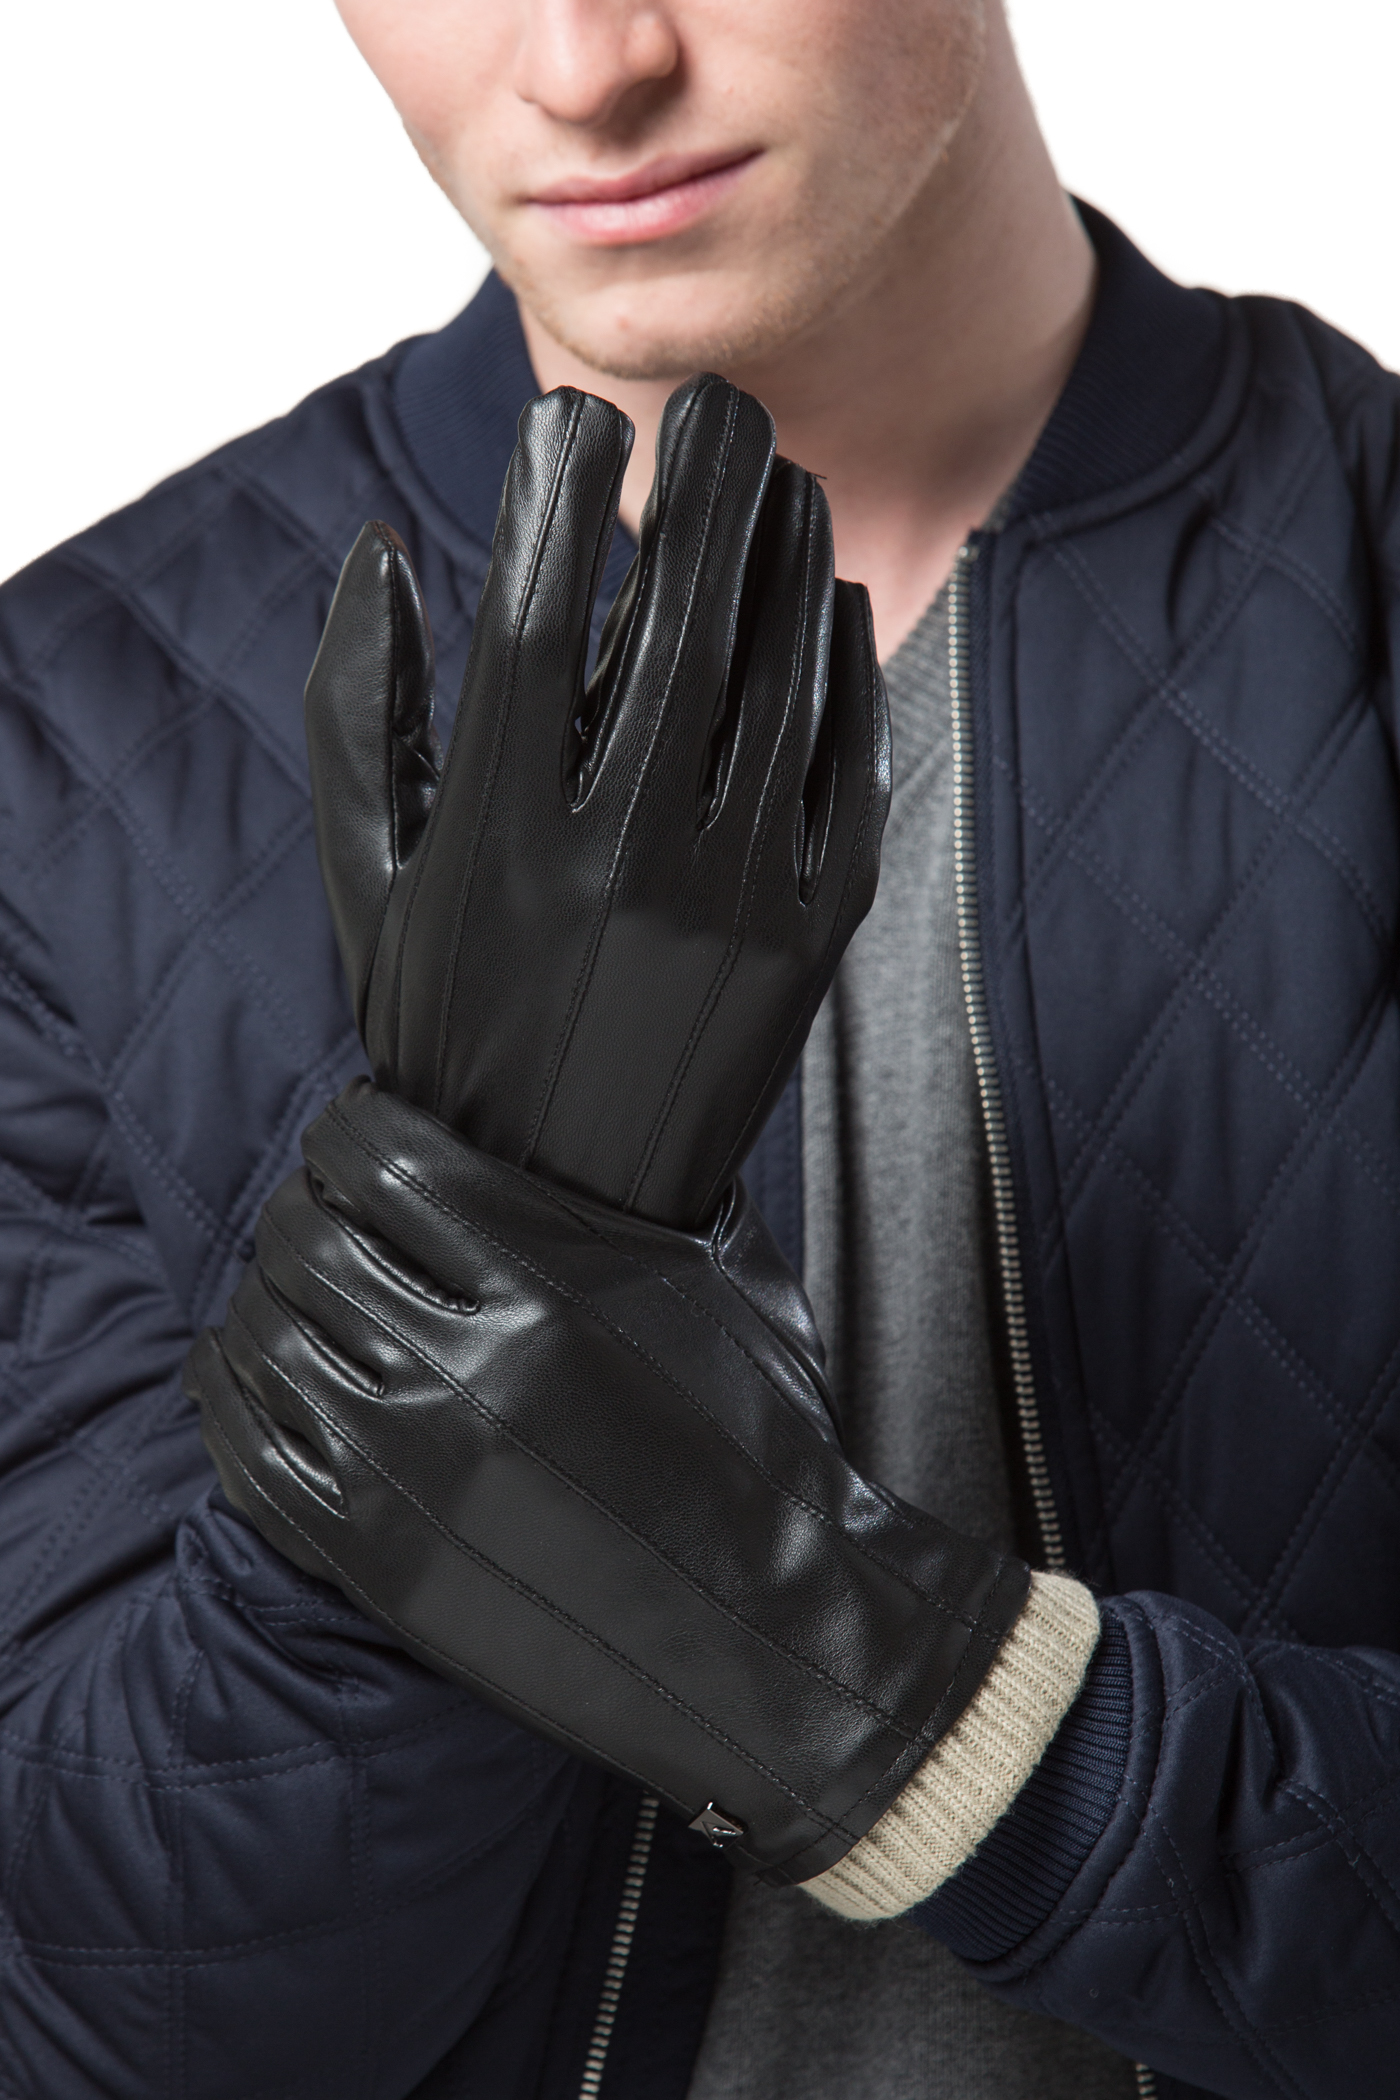 MENS TOUCH SCREEN faux LEATHER GLOVES THERMAL LINED BLACK DRIVING WINTER GIFT